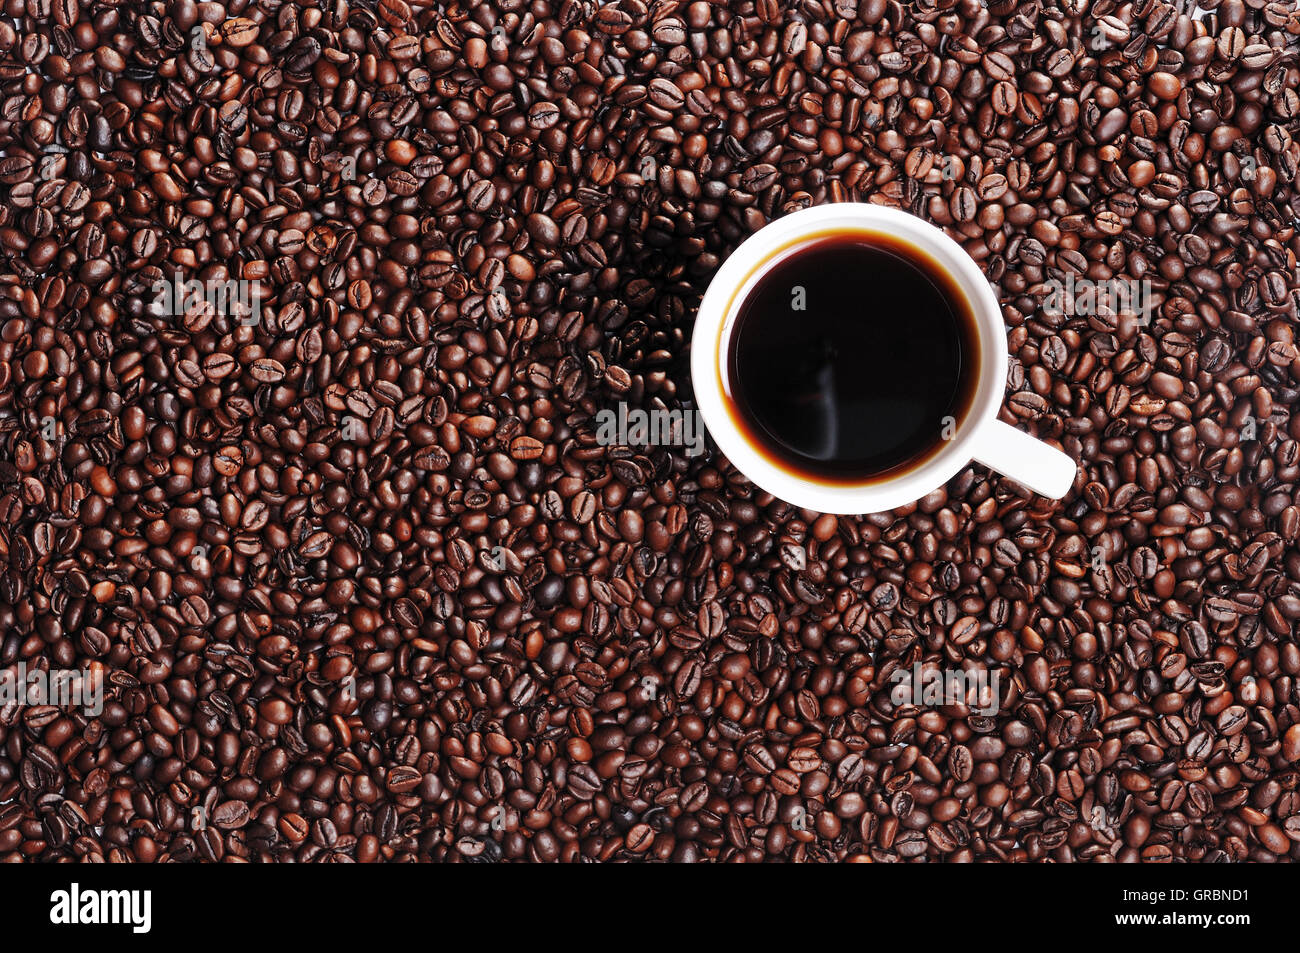 Coffee Bean And Coffee Cup Stock Photo